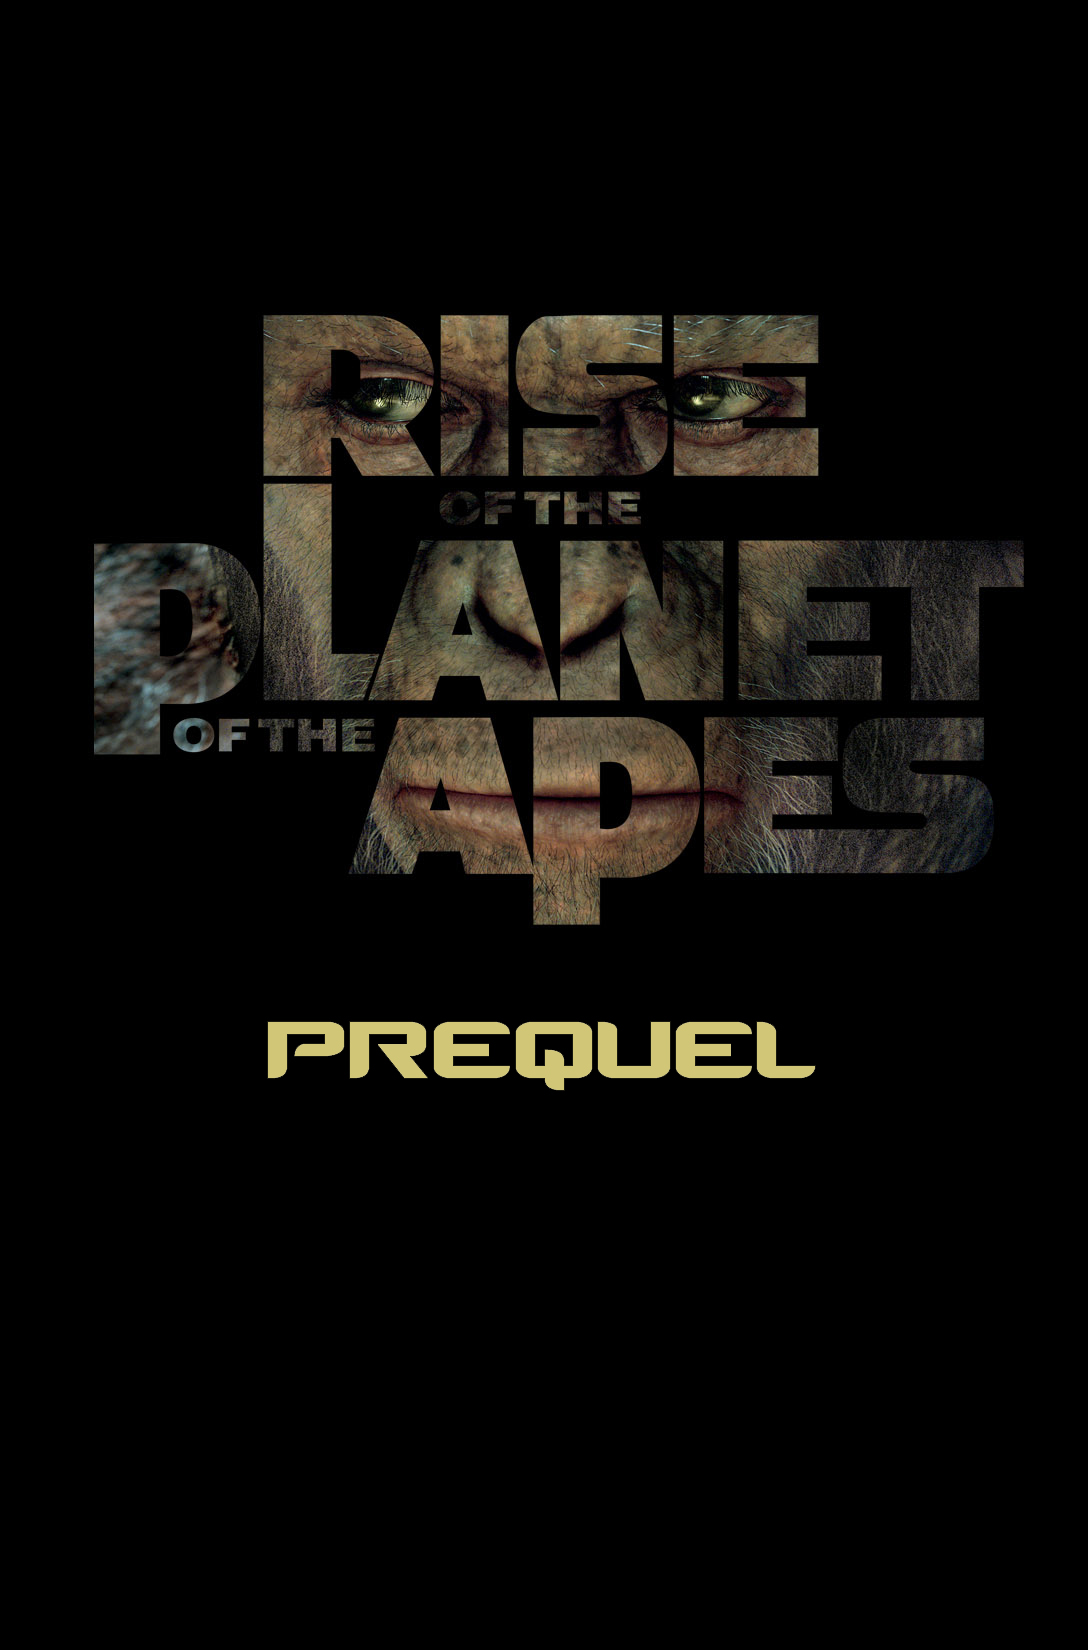 Rise of the Planet of the Apes (webcomic)